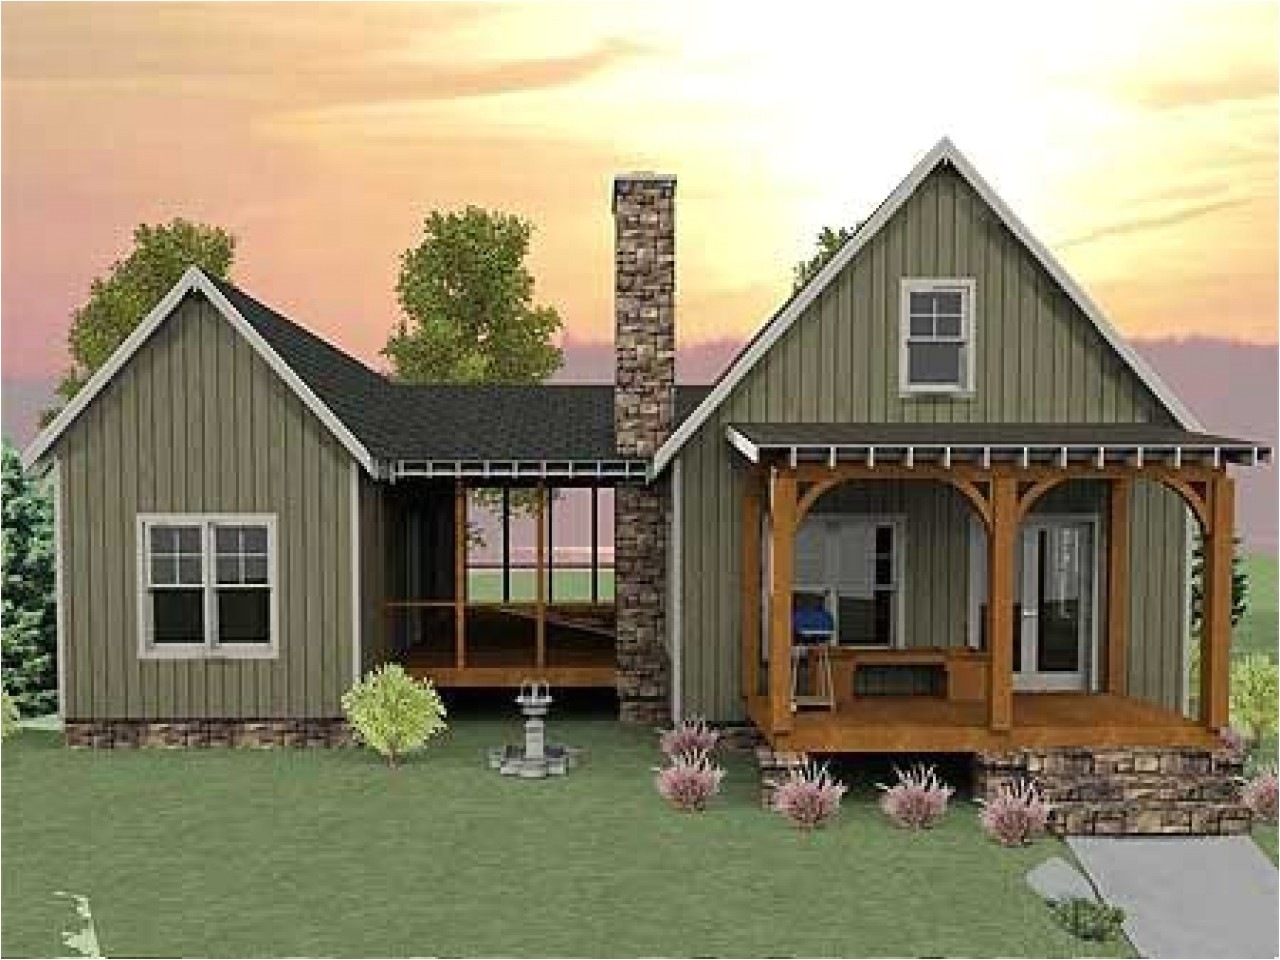 9b72c4029cb0c04a small house plans with screened porch small house plans with basement